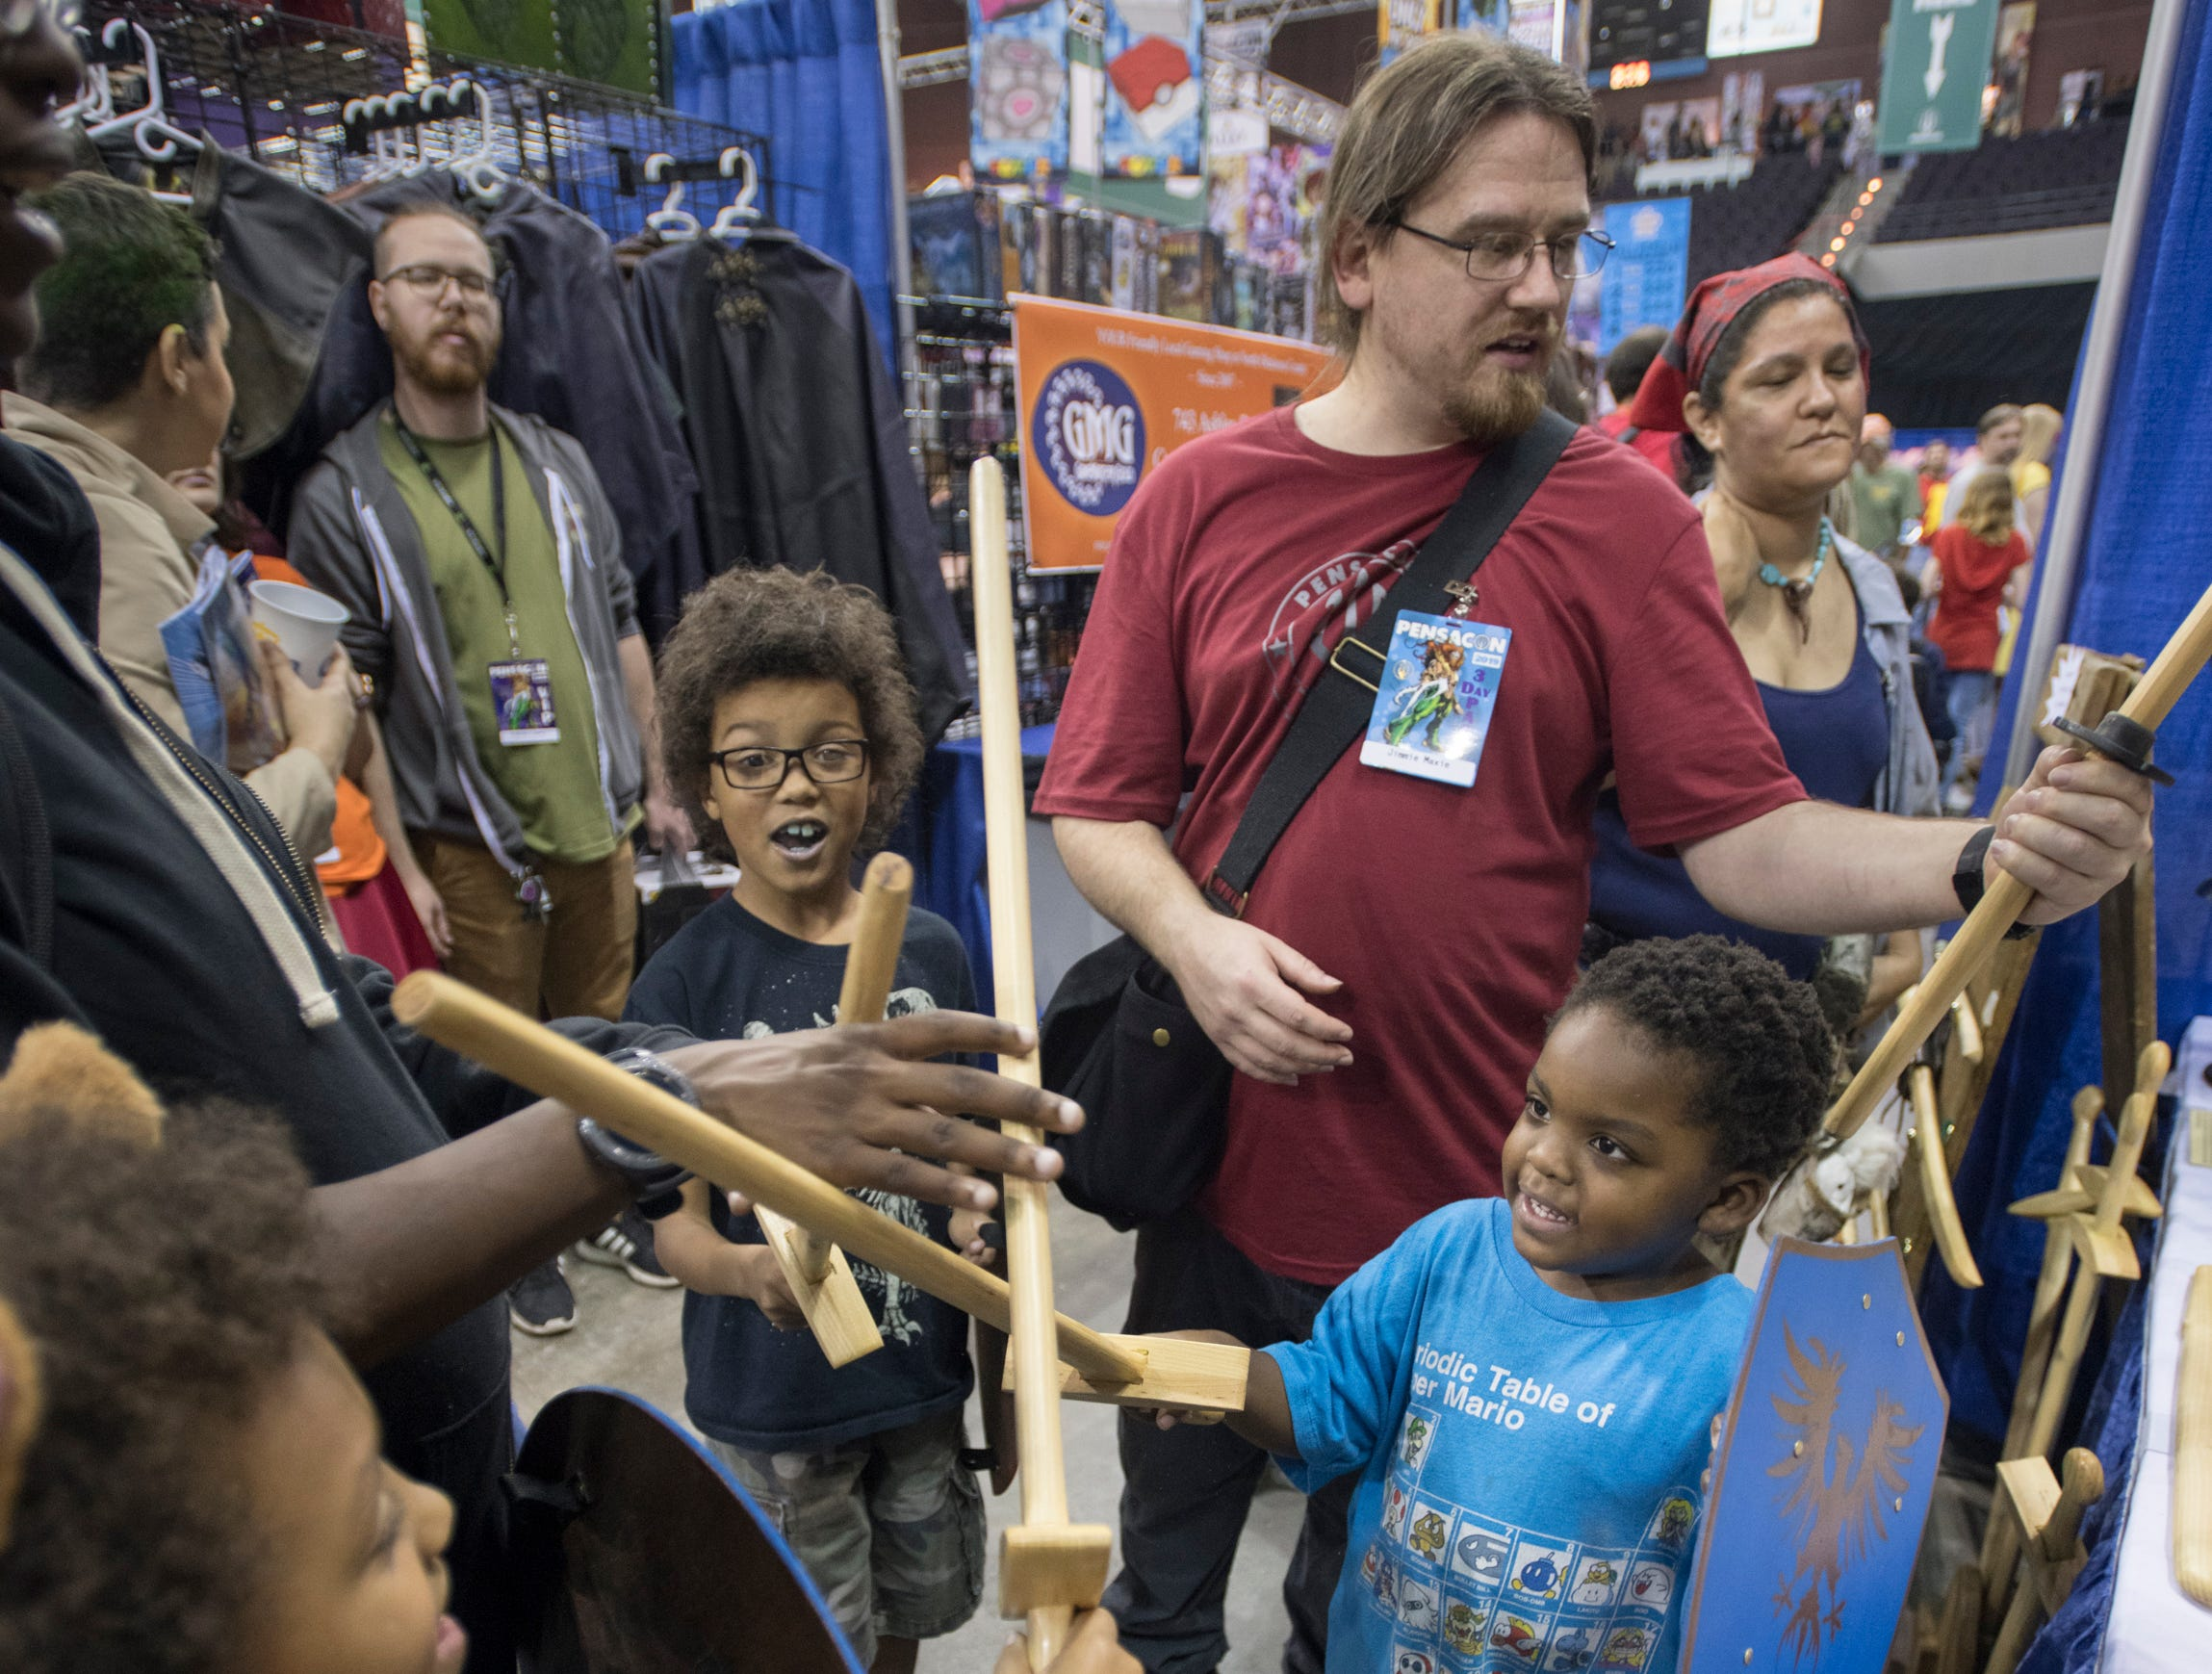 Brothers Geordi, 7, from left, Jimmie, 8, and Vash Maxie, 4, of De Funiak Springs, try out their new wooden swords during Pensacon at the Pensacola Bay Center on Friday, February 22, 2019.